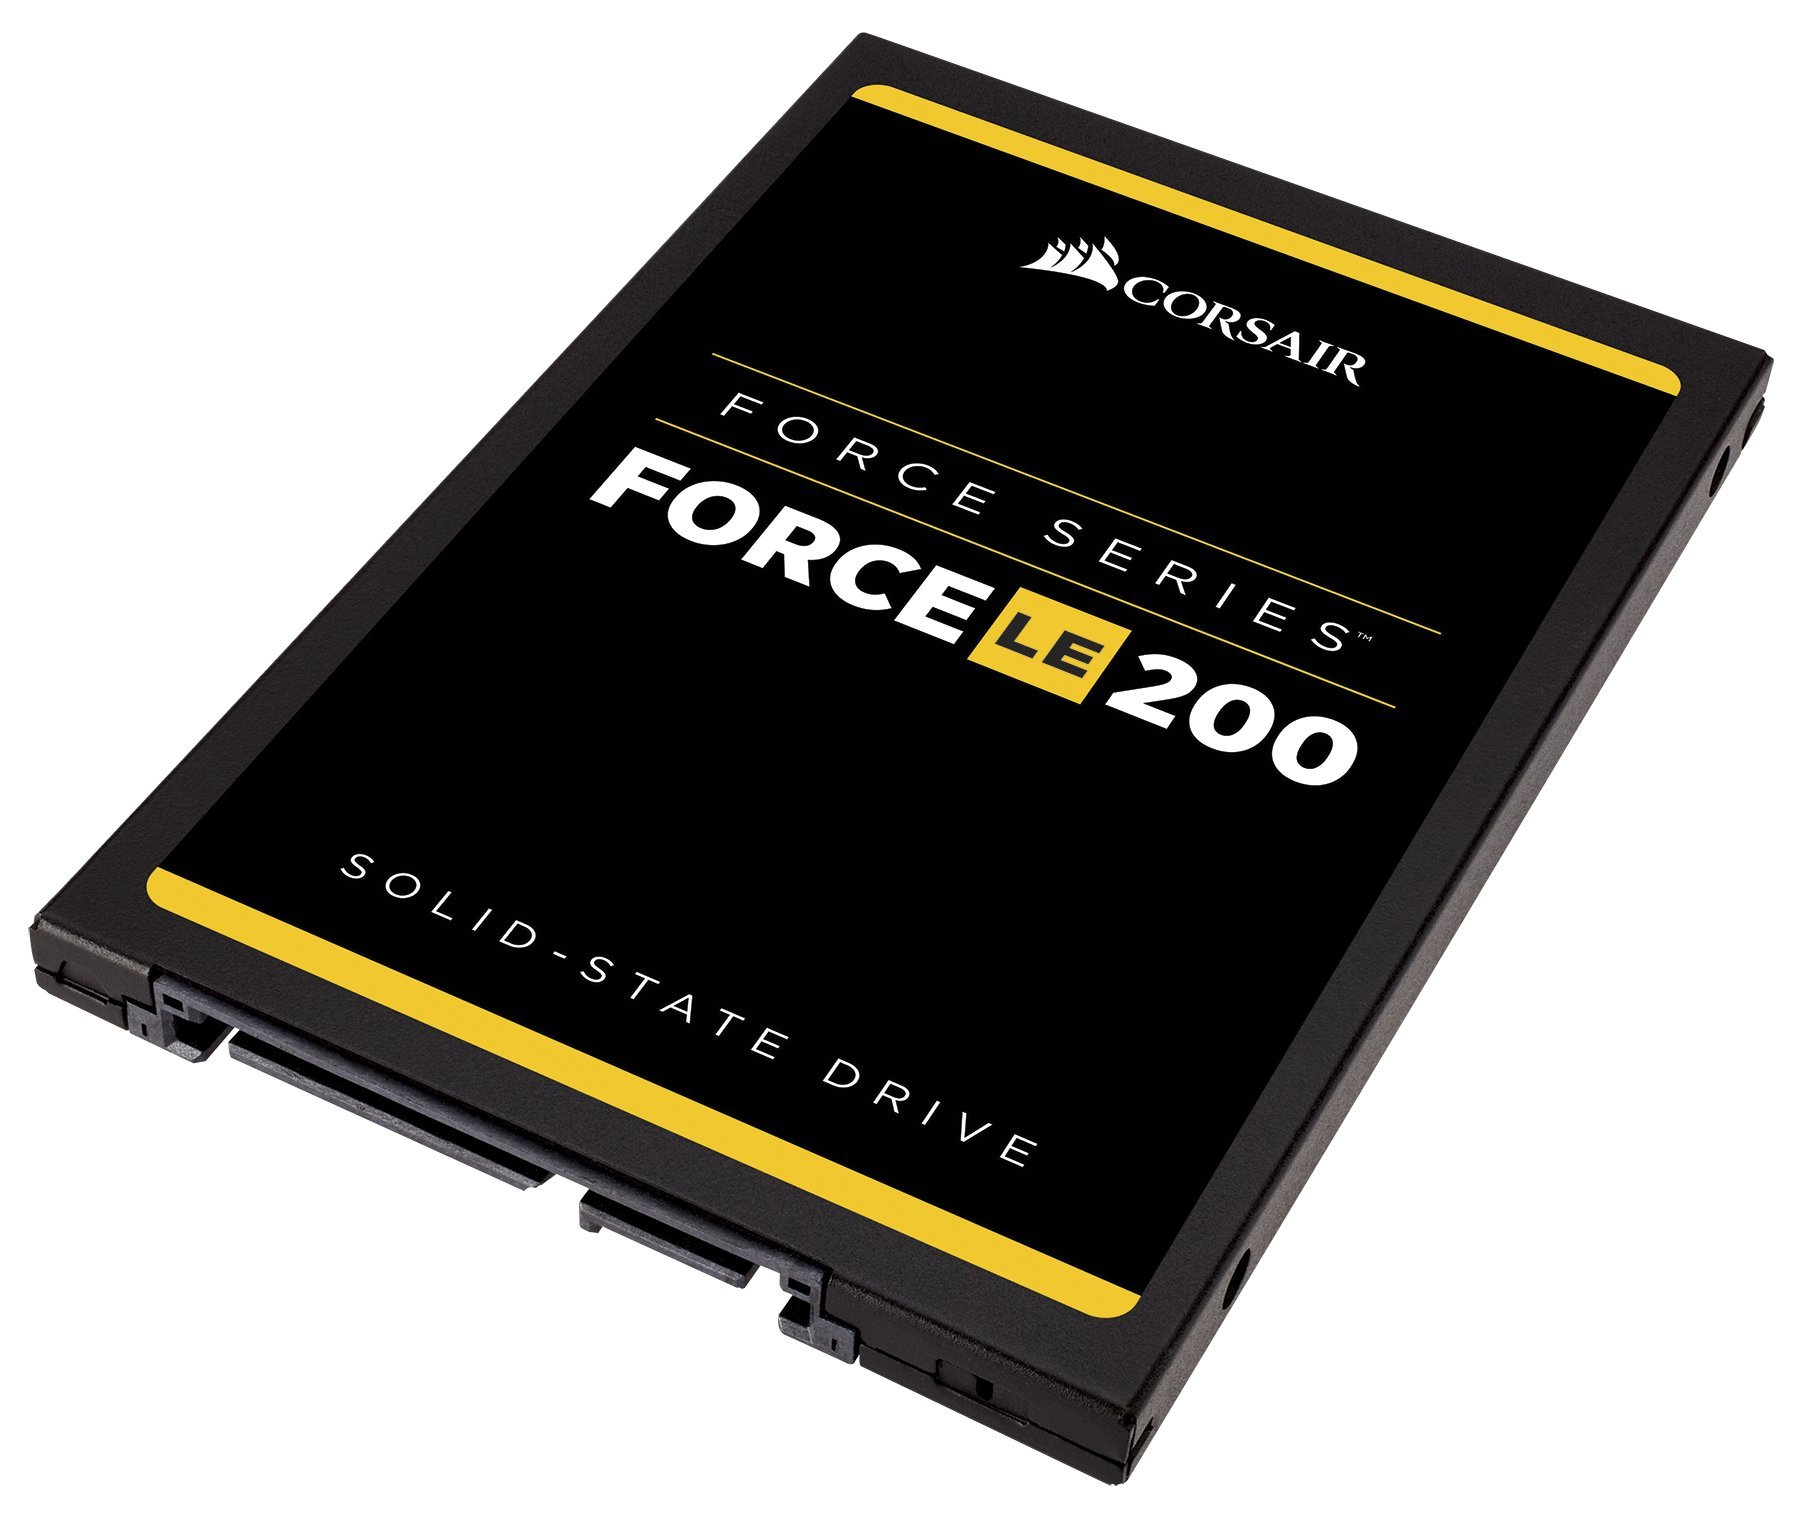 Corsair Memory Only Corsair Force Series LE200 SSD, SATA 6Gbps 120GB 2.5 inches CSSD-F120GBLE200B by Corsair (Image #1)